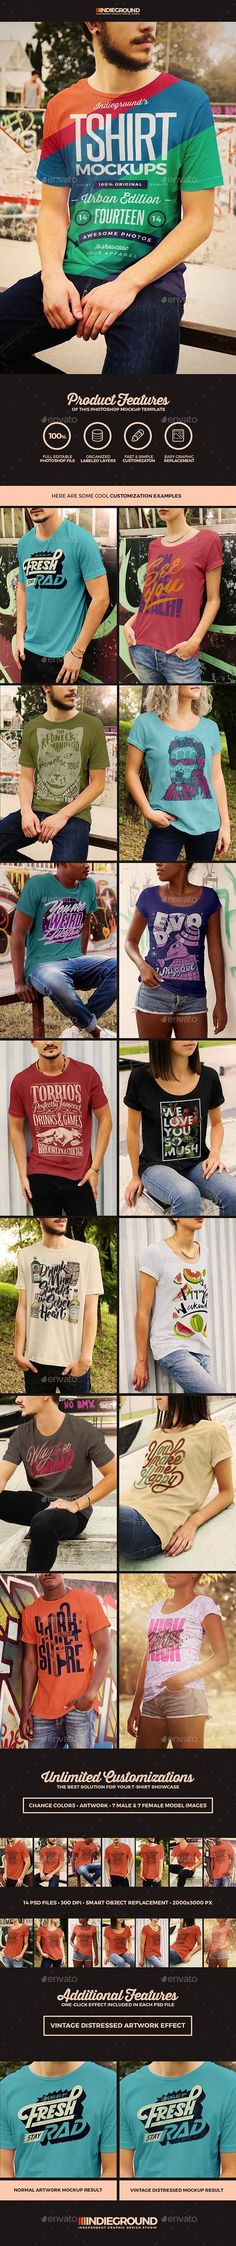 "Premium Male & Female Tees Realistic Mockups"" Features - 14 Psd Files Smart Object Replacement px 300 dpi / RGB Well Organized Layers Editable Quick Graphic Replacement Vintage Distressed Graphic Effect Included Stencil Templates, Mockup Templates, T Shirt Design Template, Design Templates, Mockup Photoshop, Shirt Mockup, Creative Sketches, Pencil Illustration, Watercolor And Ink"